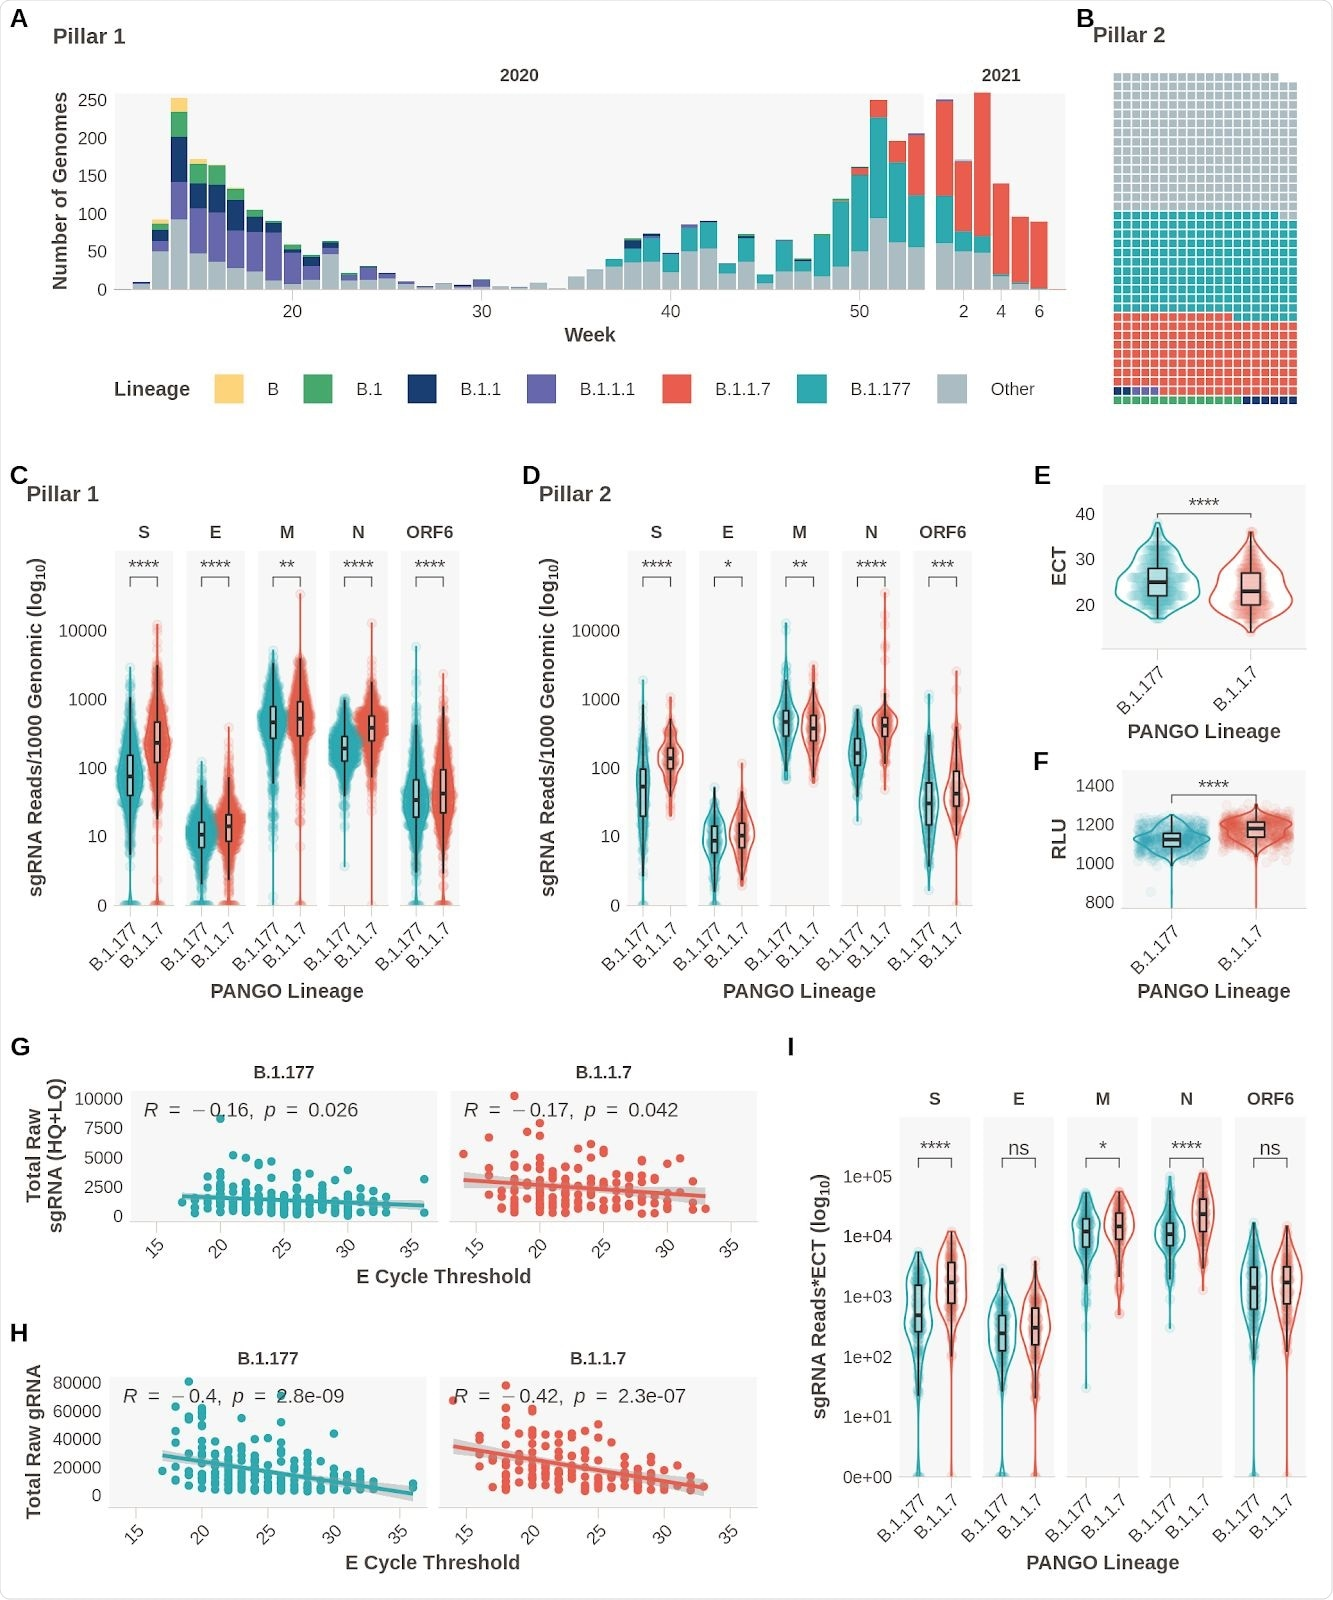 Subgenomic RNA Expression is Increased in B.1.1.7 infections. A. Pillar 1 SARS-CoV-2 lineages over time (B.1.1.7n  = 729, B.1.177n  =764). B. Representation of lineage composition of pillar 2 data (B.1.1.7n  = 150, B.1.177n  = 179). C. sgRNA expression in samples of lineages B.1.177 and B.1.1.7 in pillar 1 samples from the most highly expressed ORFs. D. sgRNA expression in samples of lineages B.1.177 and B.1.1.7 in pillar 2 samples from the most highly expressed ORFs. E. E gene cycle threshold (ECT) for B.1.177 (n=257) and B.1.1.7 (n=185) lineages. F. Relative light units (RLU) for B.1.177 (n=626) and B.1.1.7 (n=626) lineages. G. E gene cycle threshold compared to total raw sgRNA counts (High and Low Quality) for B.1.177 and B.1.1.7. Correlation coefficient and p value using Pearson. H. E gene cycle threshold compared to total raw genomic RNA counts for B.1.177 and B.1.1.7. Correlation coefficient and p value using Pearson. I. Raw sgRNA counts normalised to E gene cycle threshold (sgRNA*ECT). All p-values (except G & H) calculated using an unpaired Wilcoxon signed rank test, and adjusted for multiple testing with the Holm method (**** < 0.0001, *** < 0.001, ** < 0.01, * < 0.05)